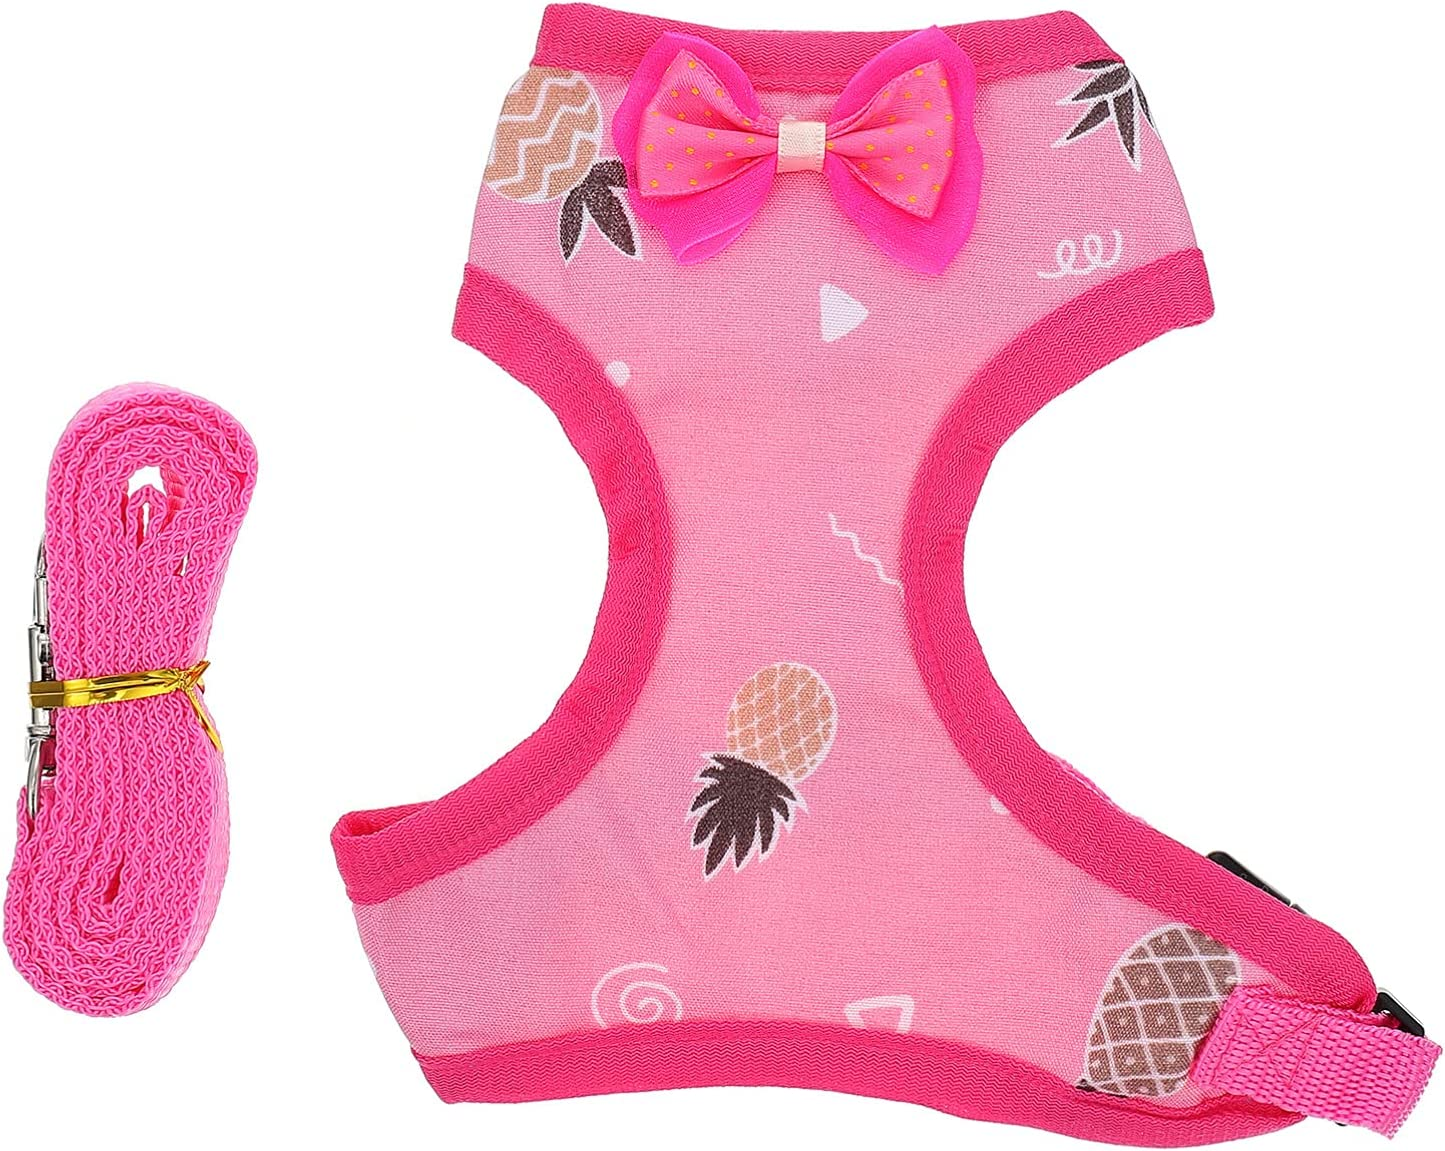 balacoo Indianapolis Mall Hen Harness with Lead Rooster Leash Breathable Max 78% OFF Har Chest